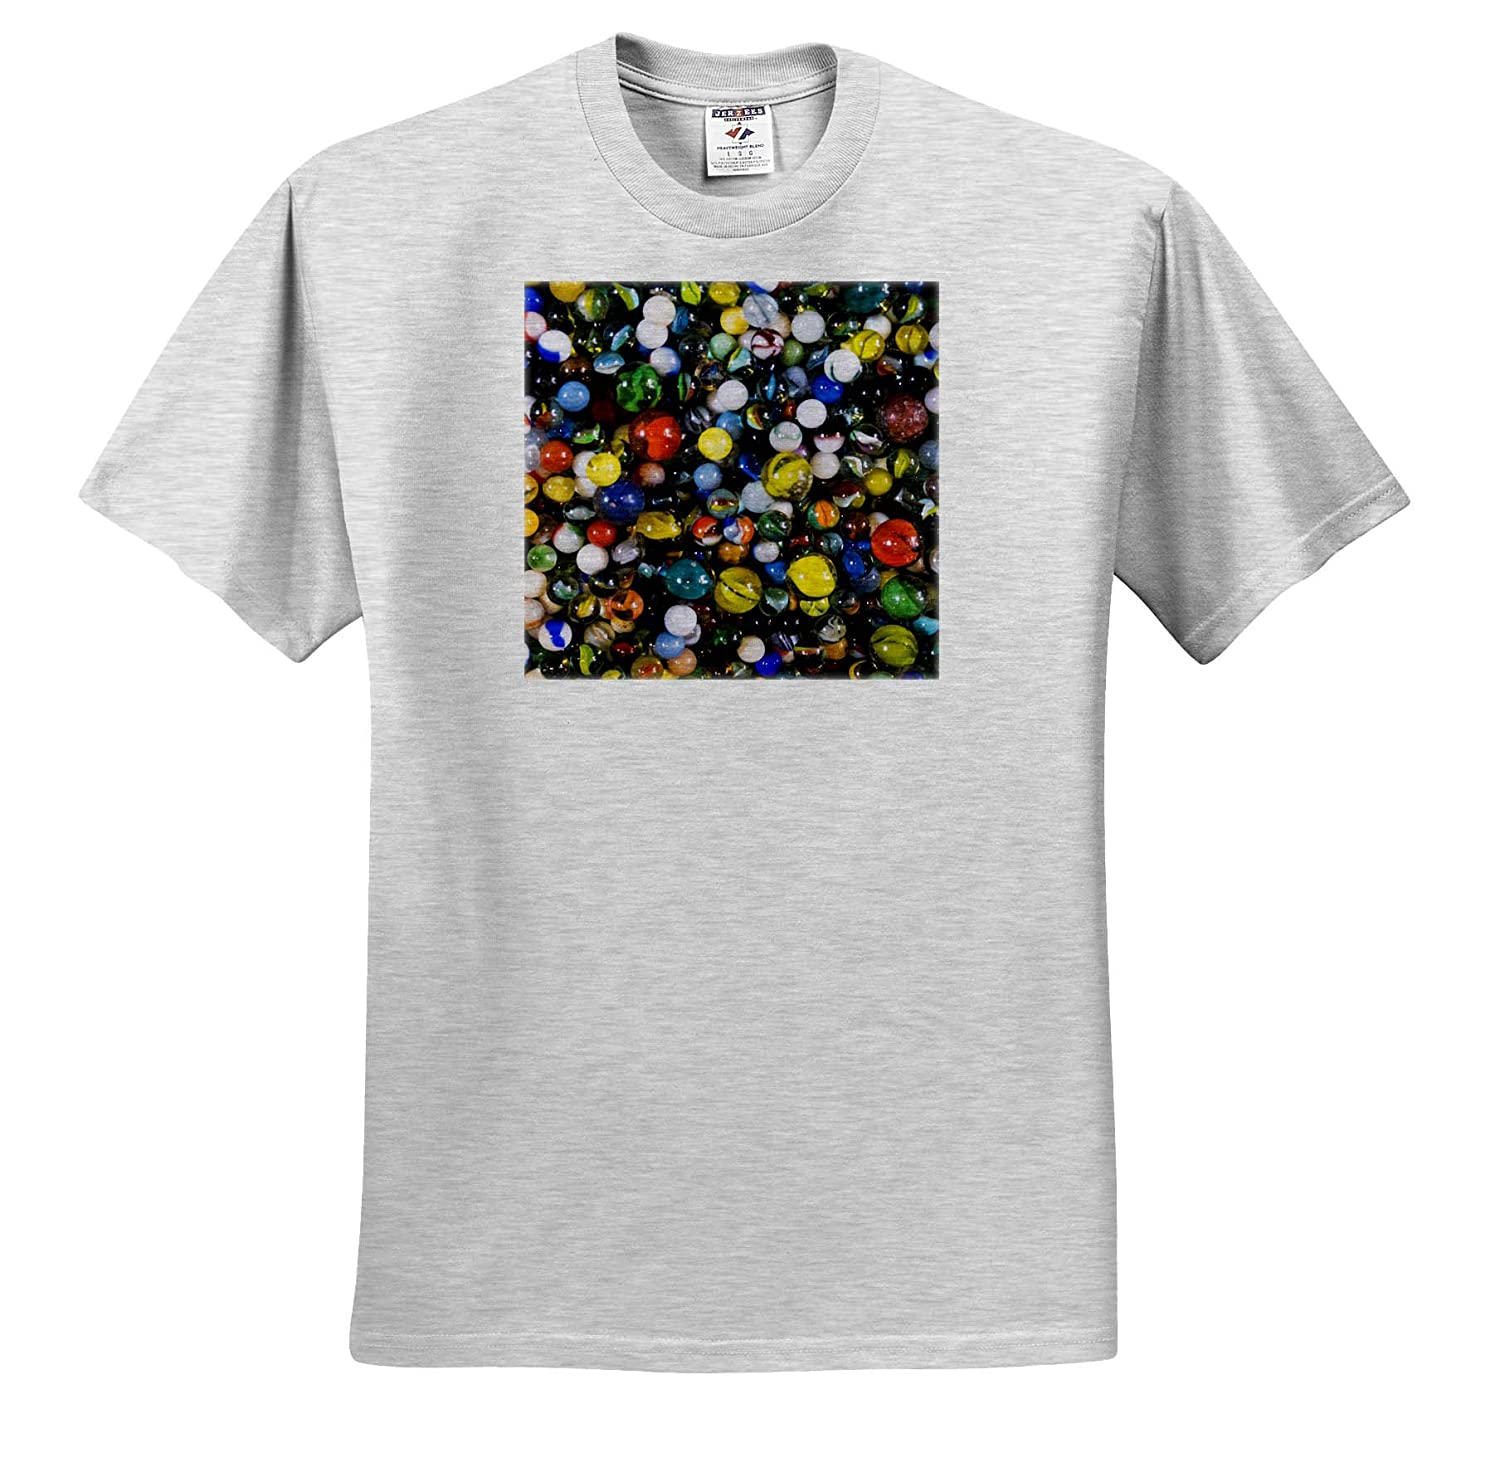 - Adult T-Shirt XL Pile of Glass Marbles Abstracts 3dRose Danita Delimont ts/_314955